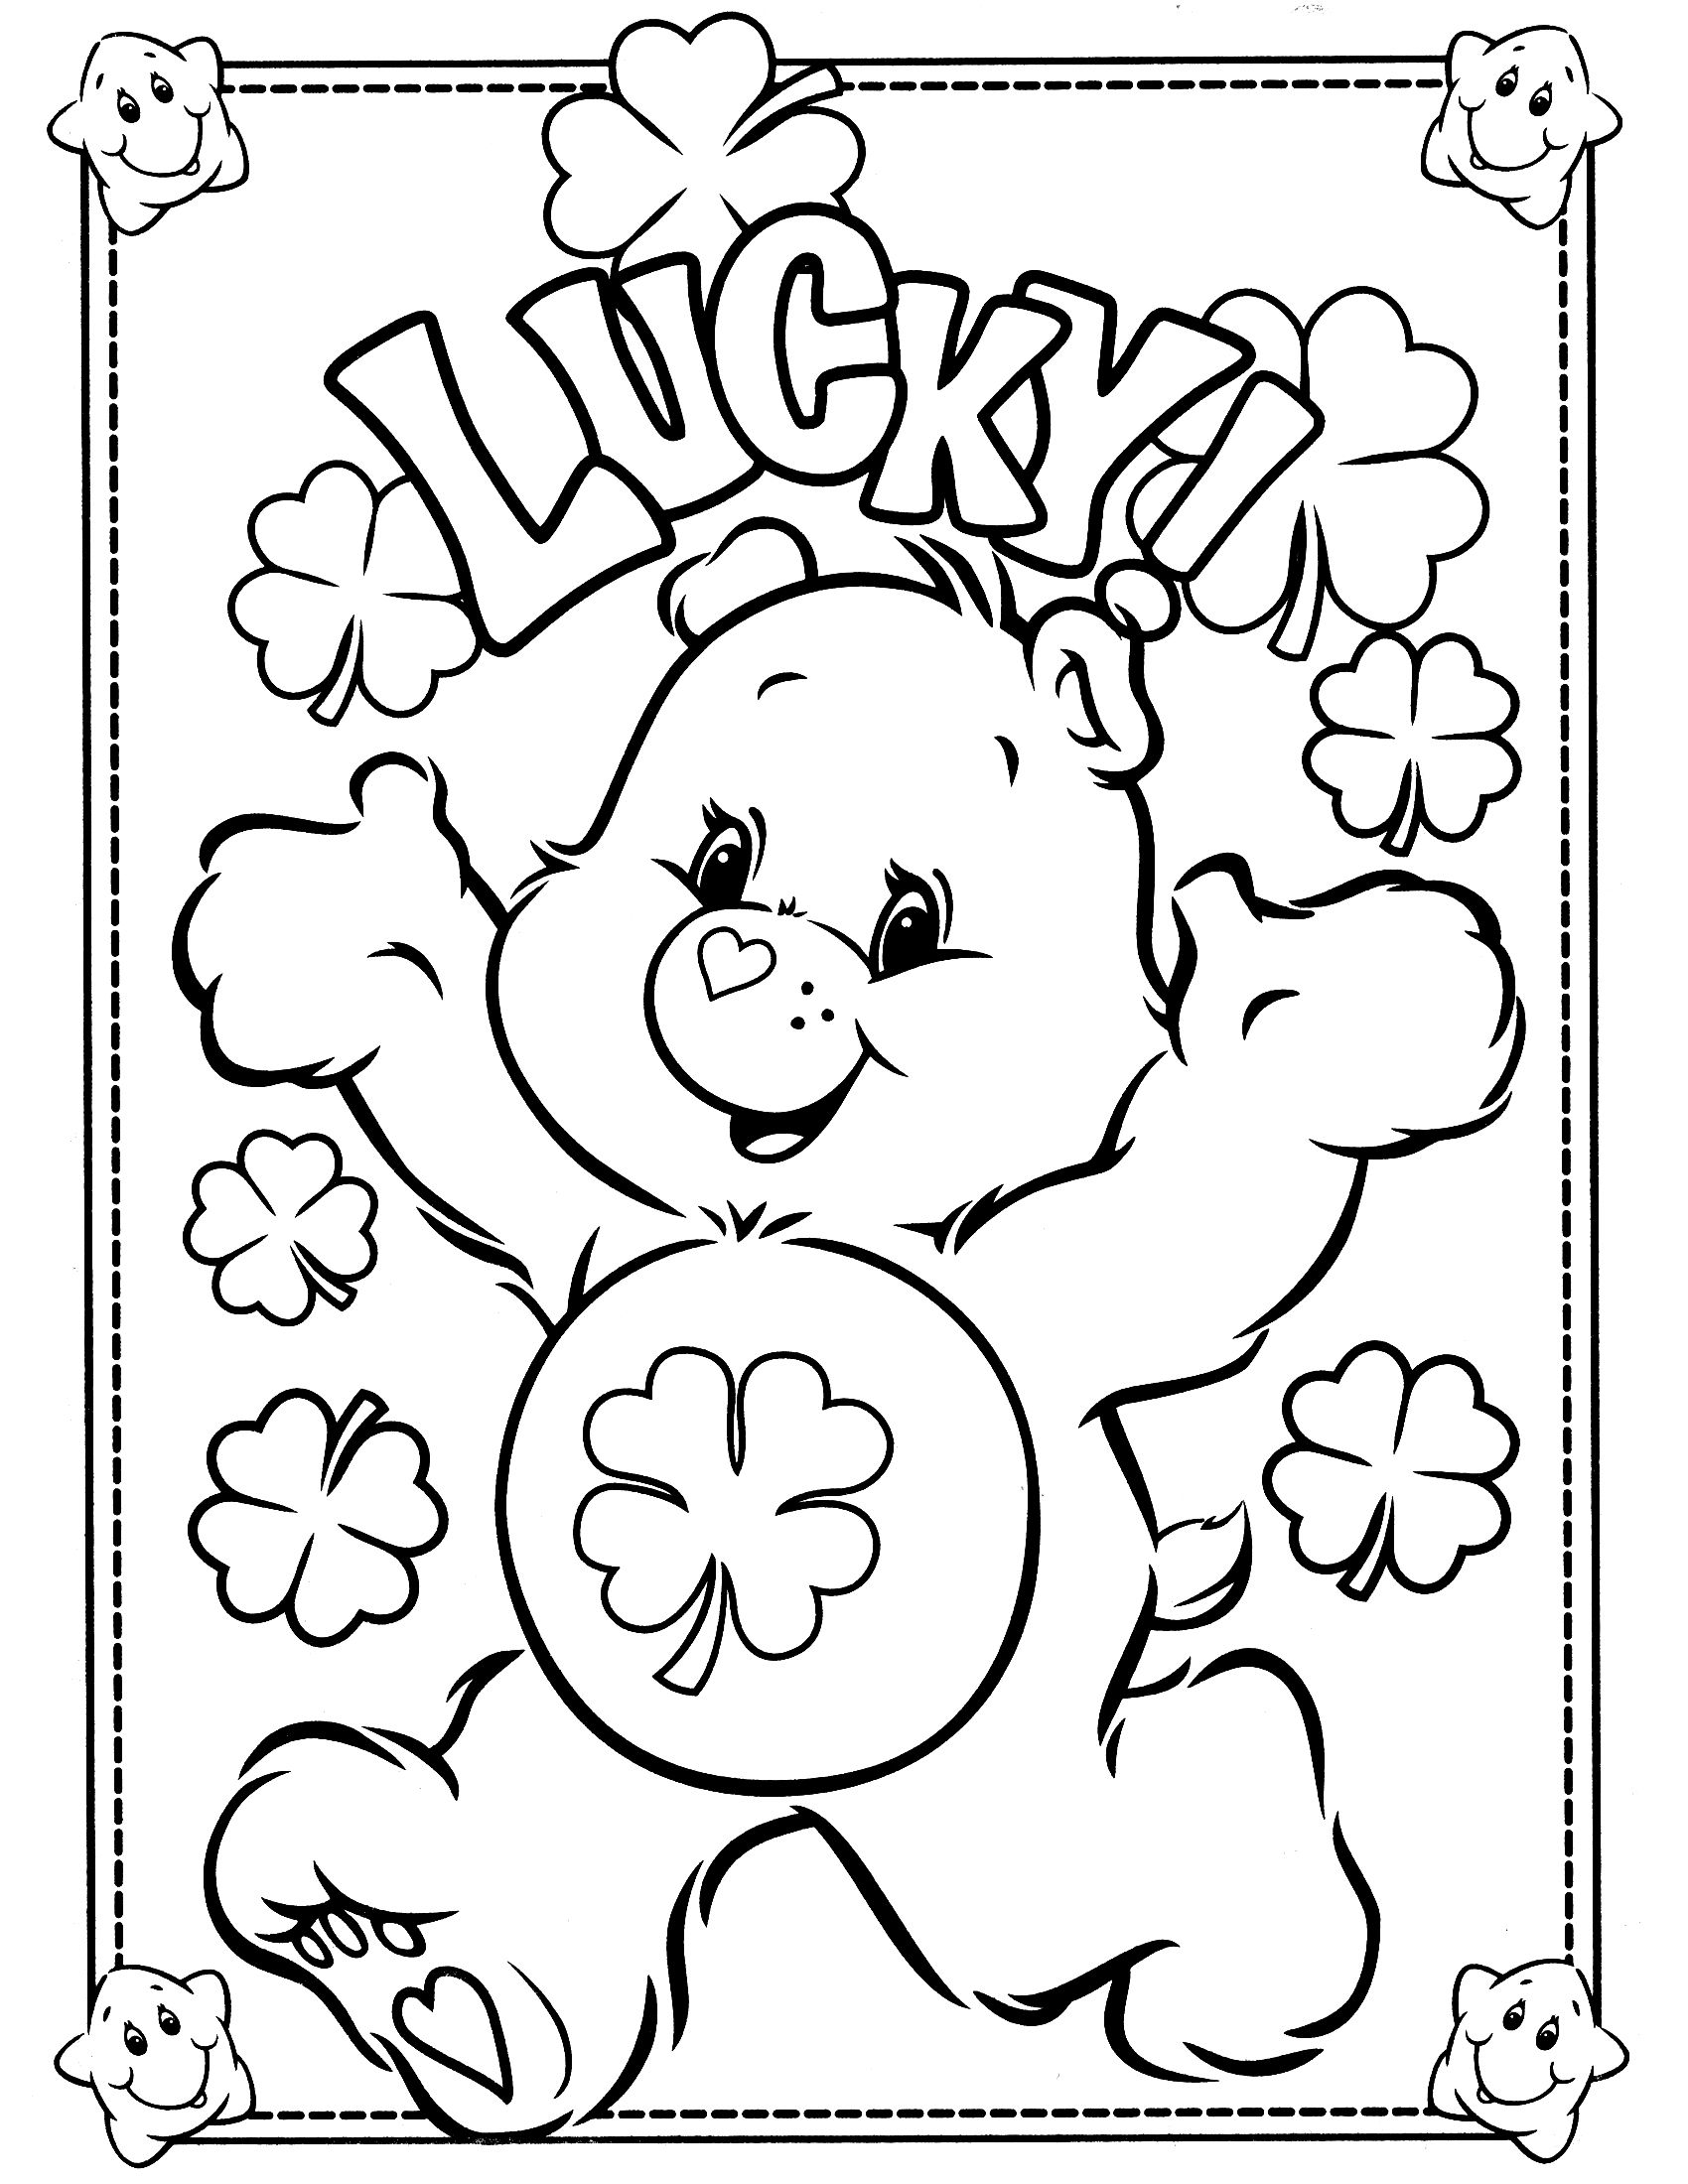 image black and white Free Printable Care Bear Coloring Pages For Kids